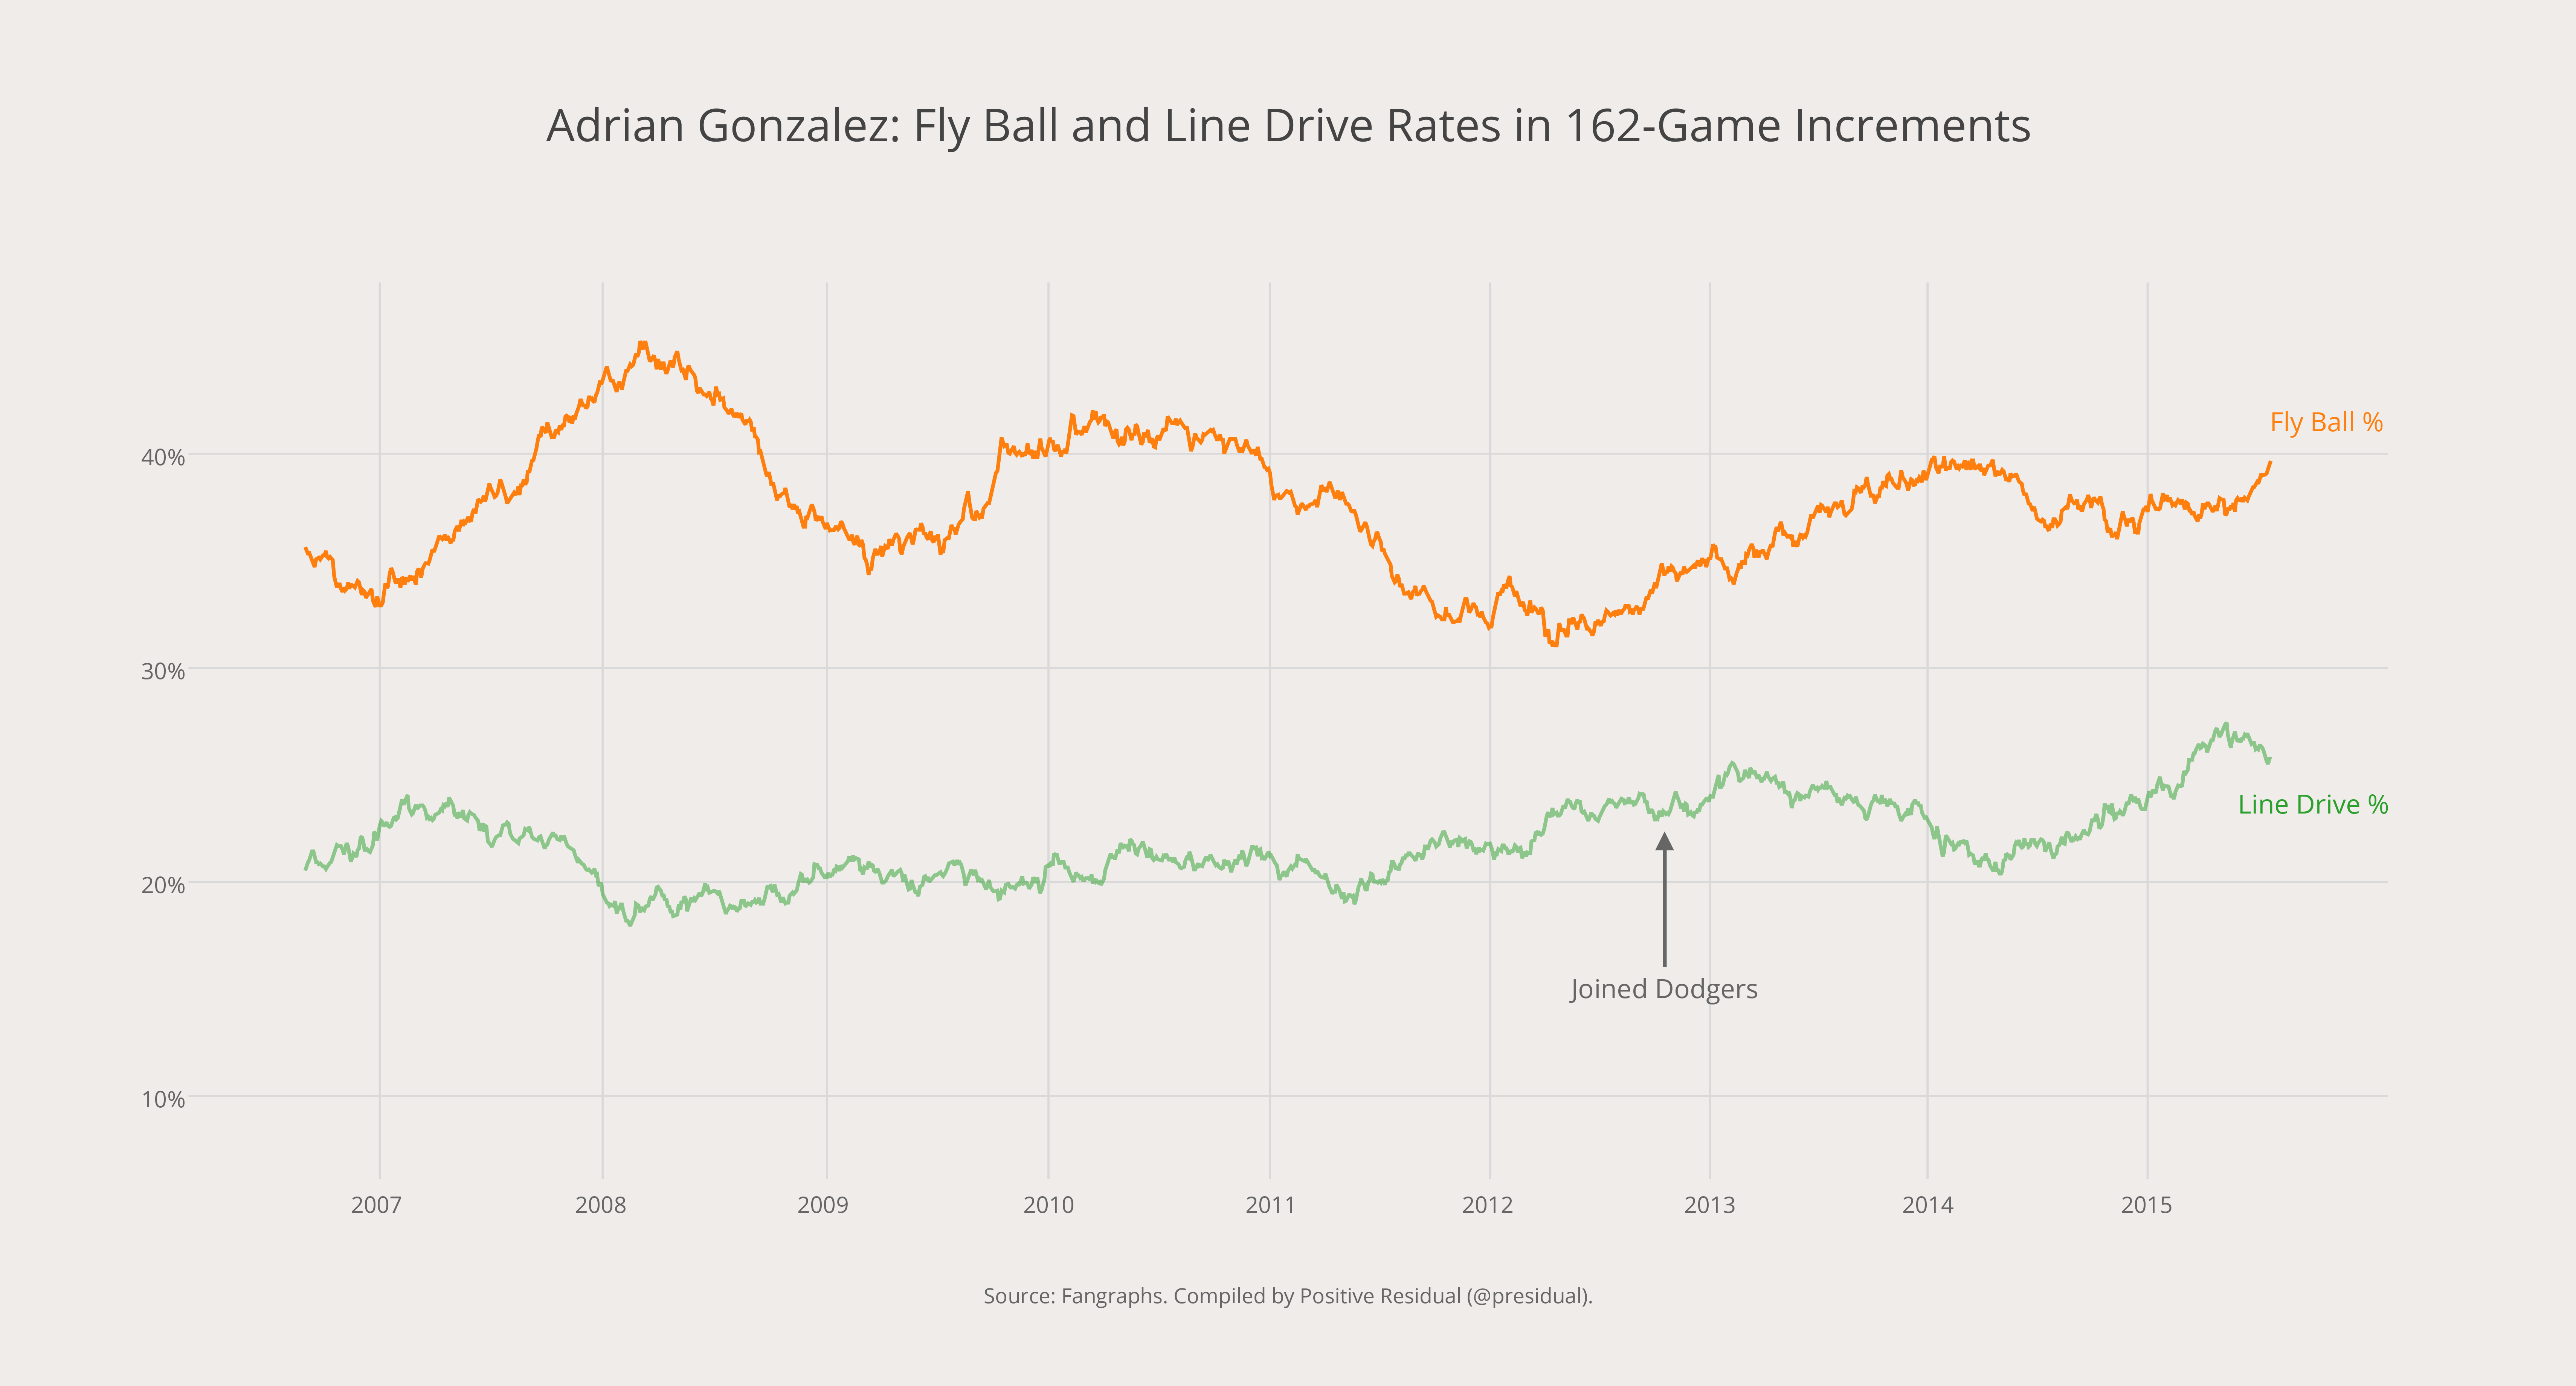 Adrian Gonzalez- Fly Ball and Line Drive Rates in 162-Game Increments